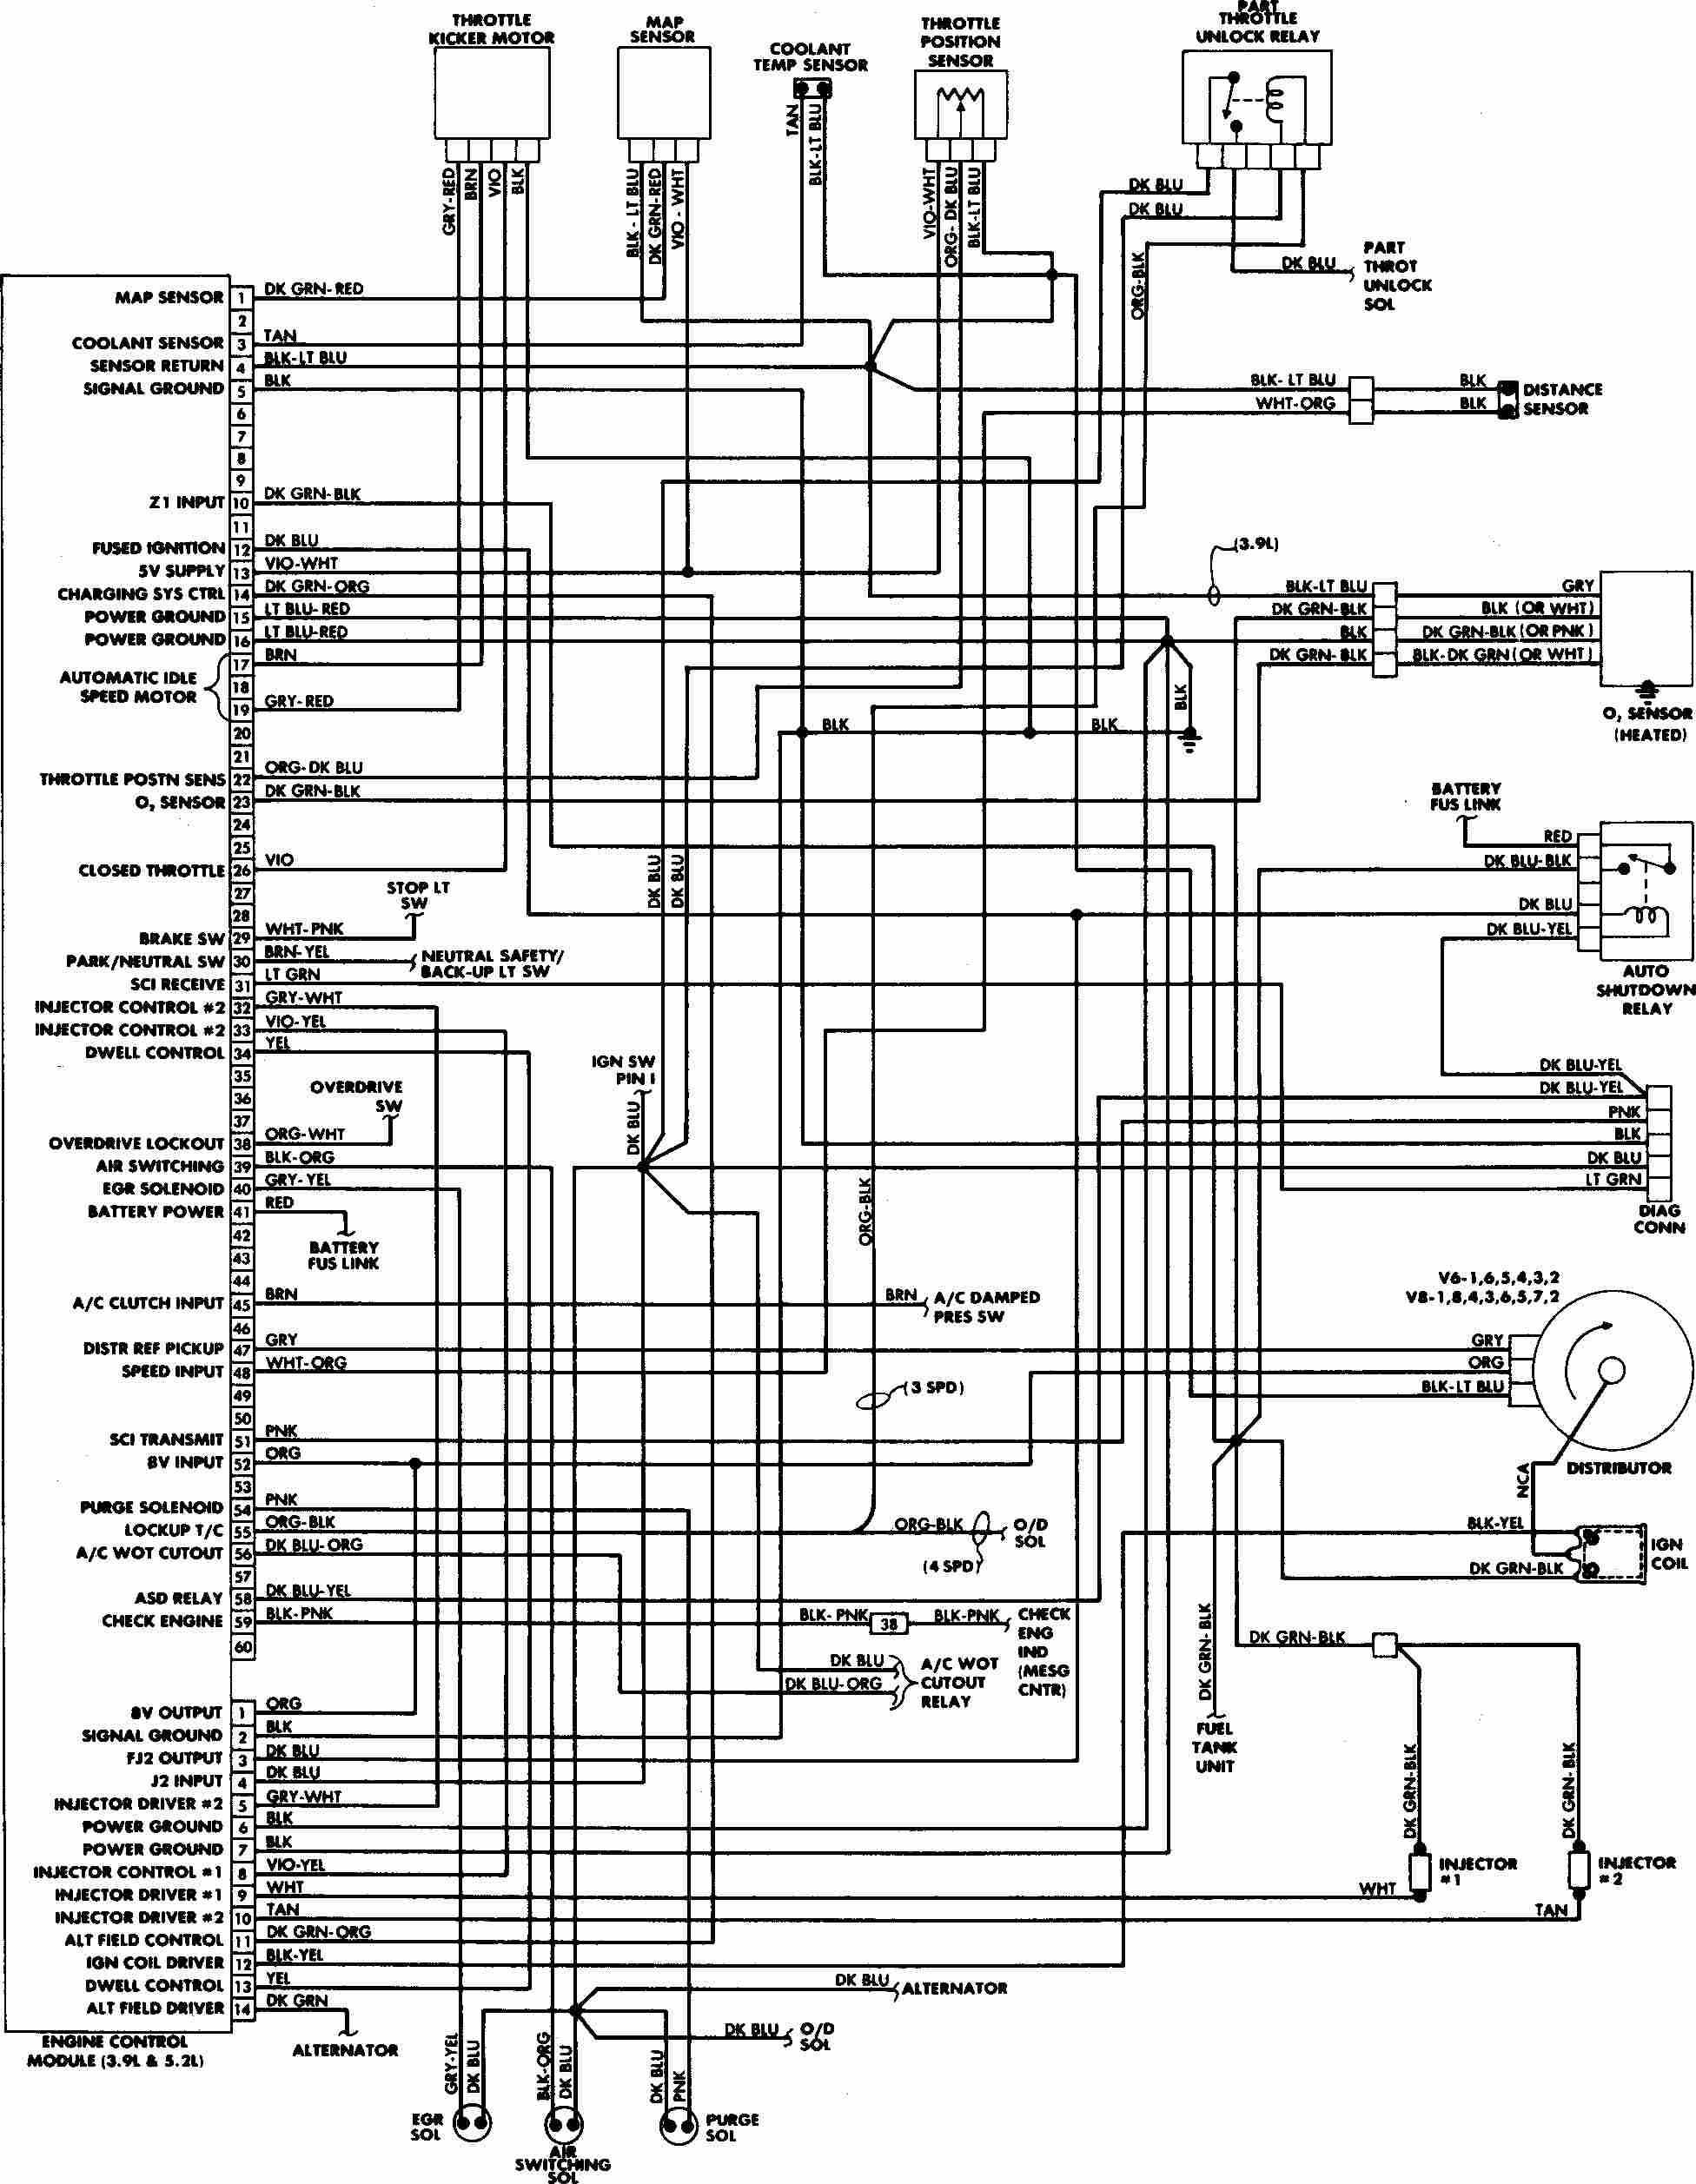 2000 Dodge Durango Engine Diagram 2003 Dodge Durango Emissions Diagram Free  Download Wiring Diagram